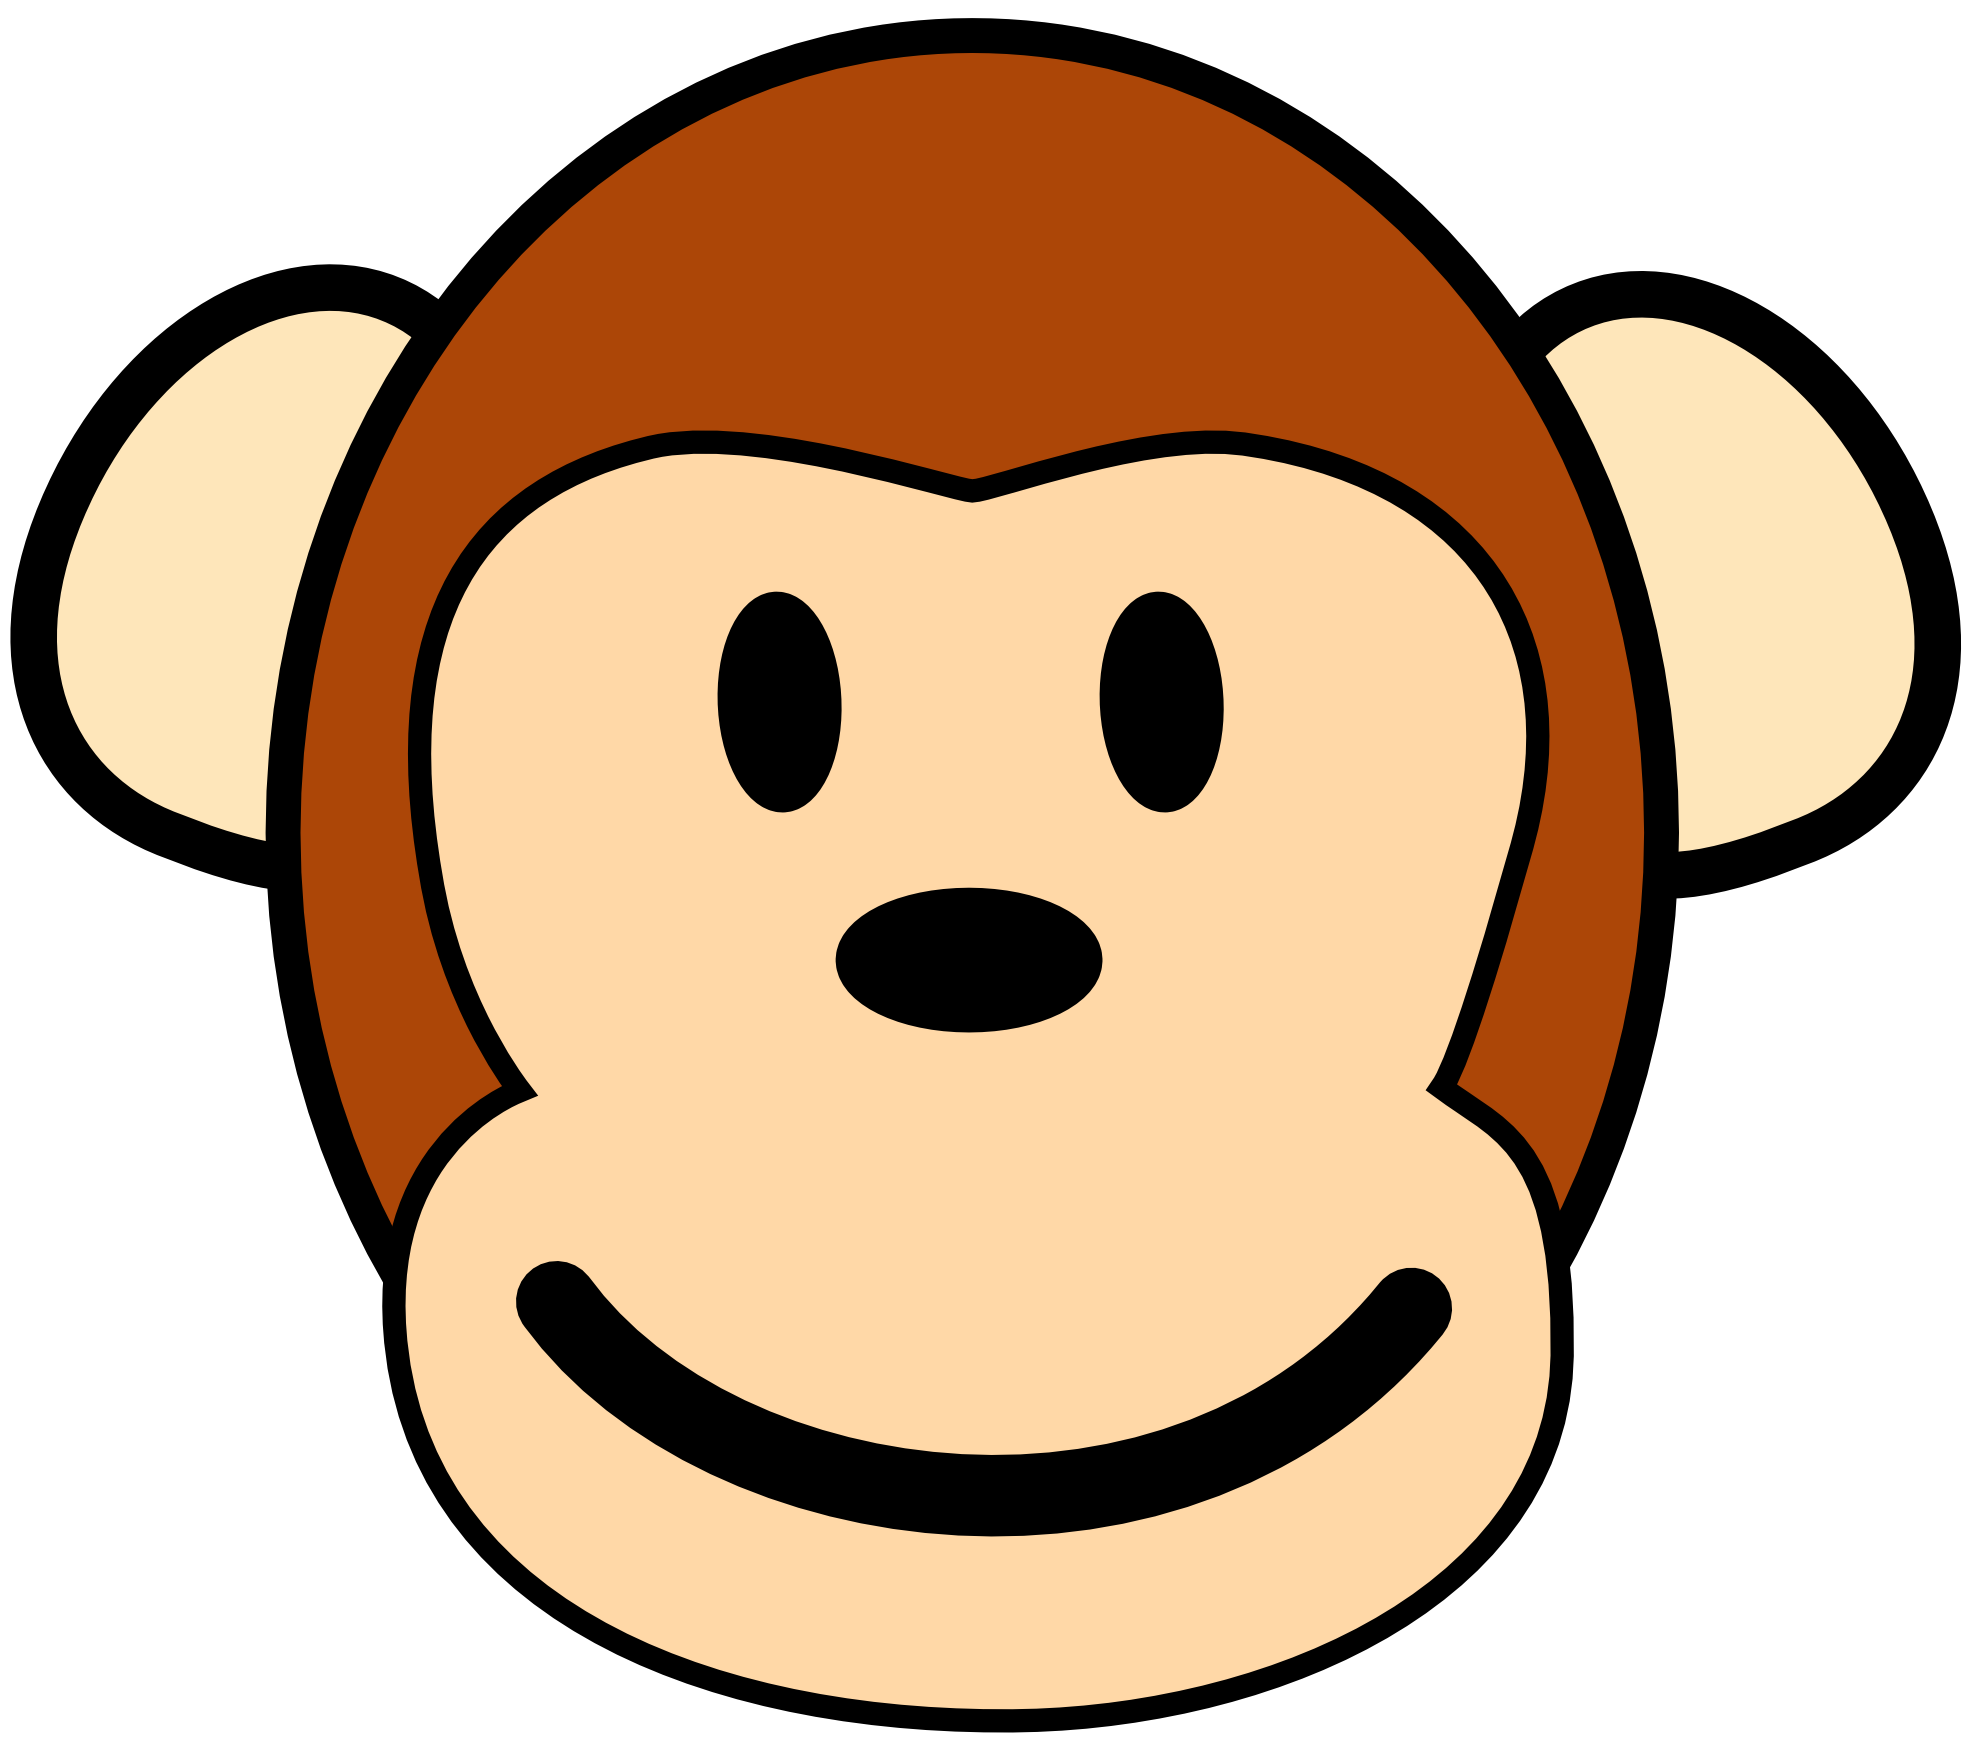 Monkey svg #5, Download drawings